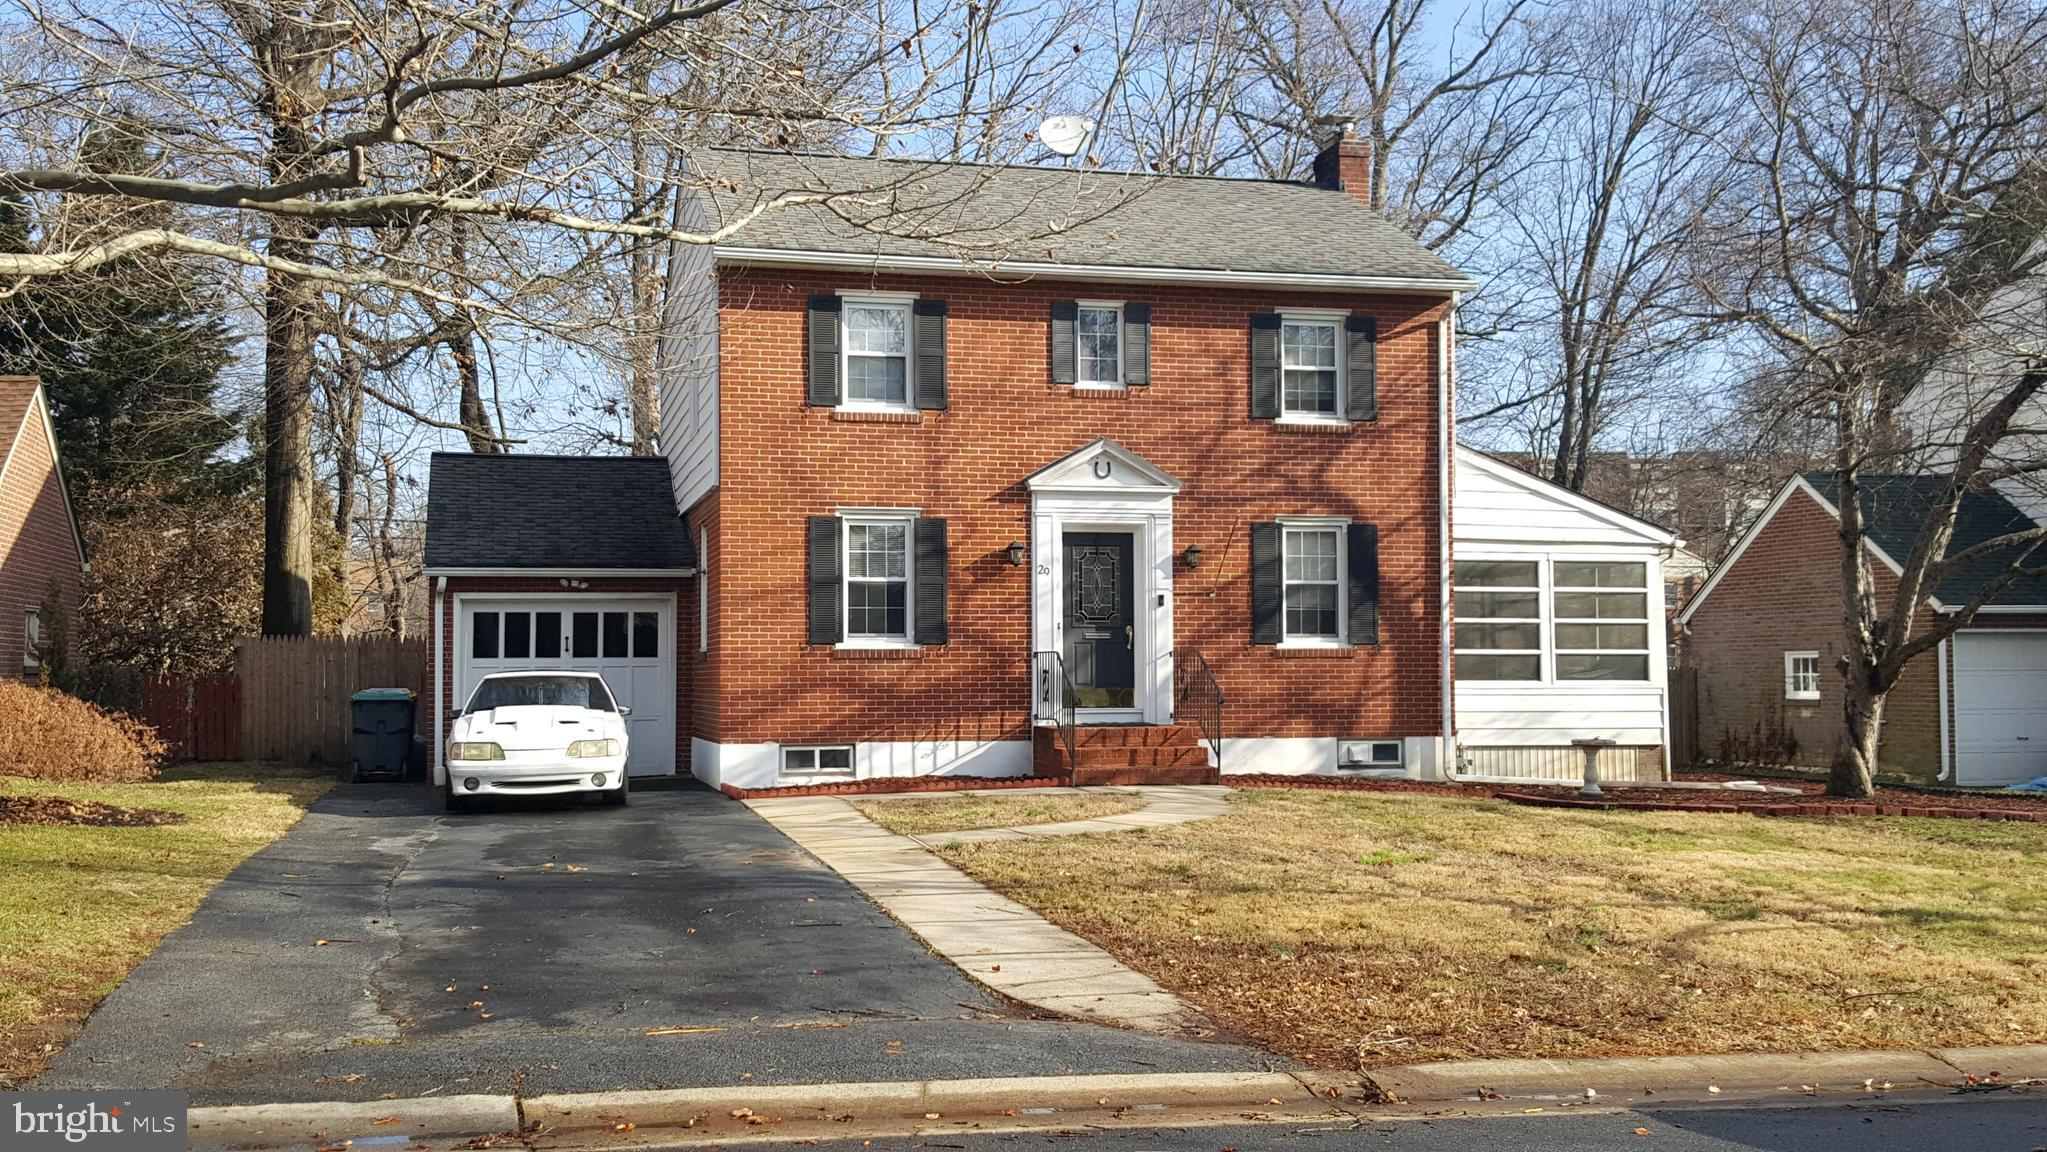 This 2 story brick, 4 bedroom, 2 full bath home located in Brandywine Hundred has a lot to offer for